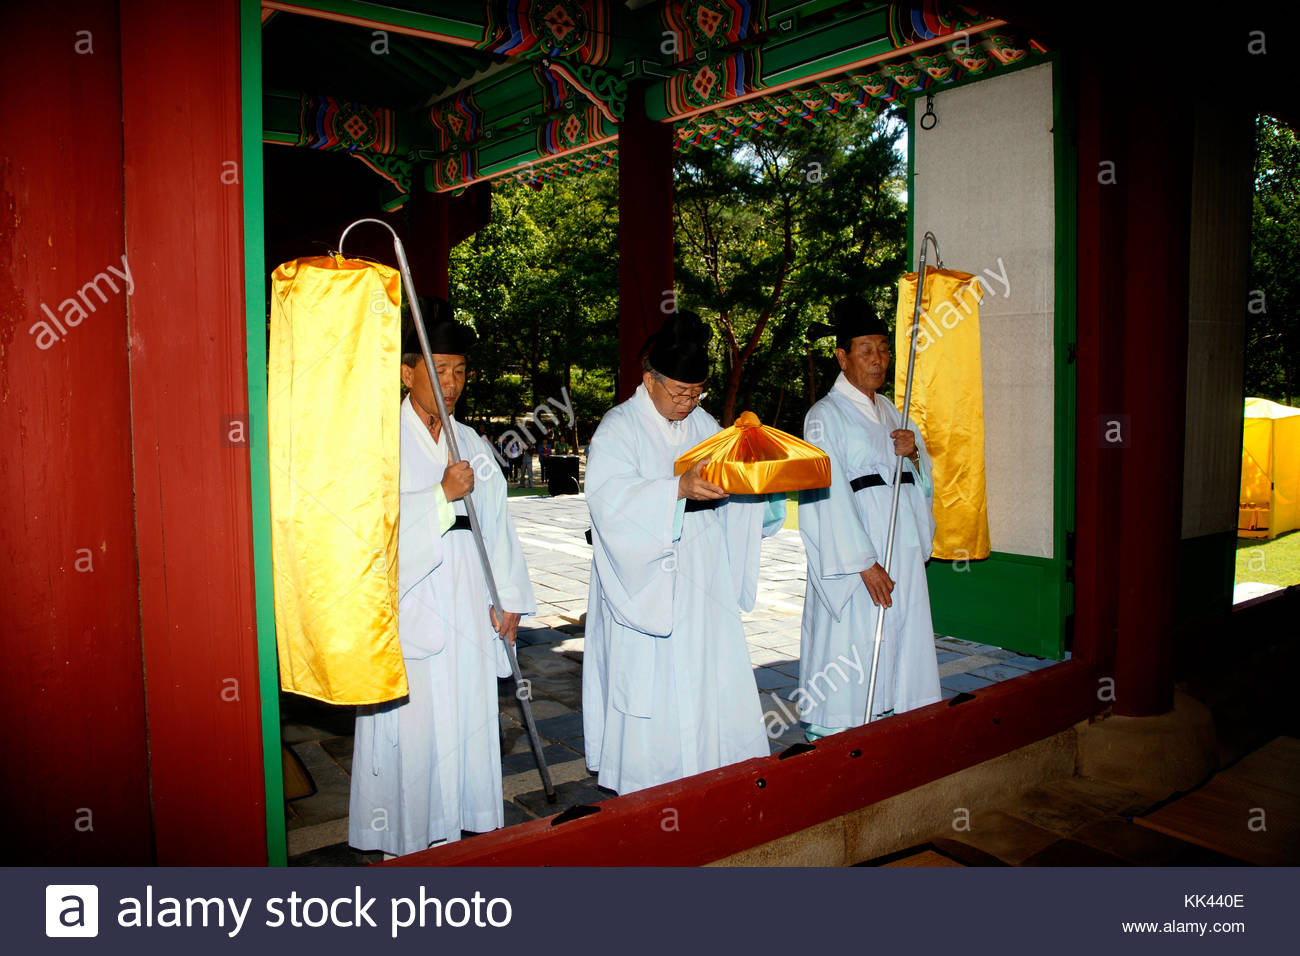 Korean history Royal Tombs of the Joseon Dynasty King Taejo Queen Shinduk sending off the axle box - Stock Image